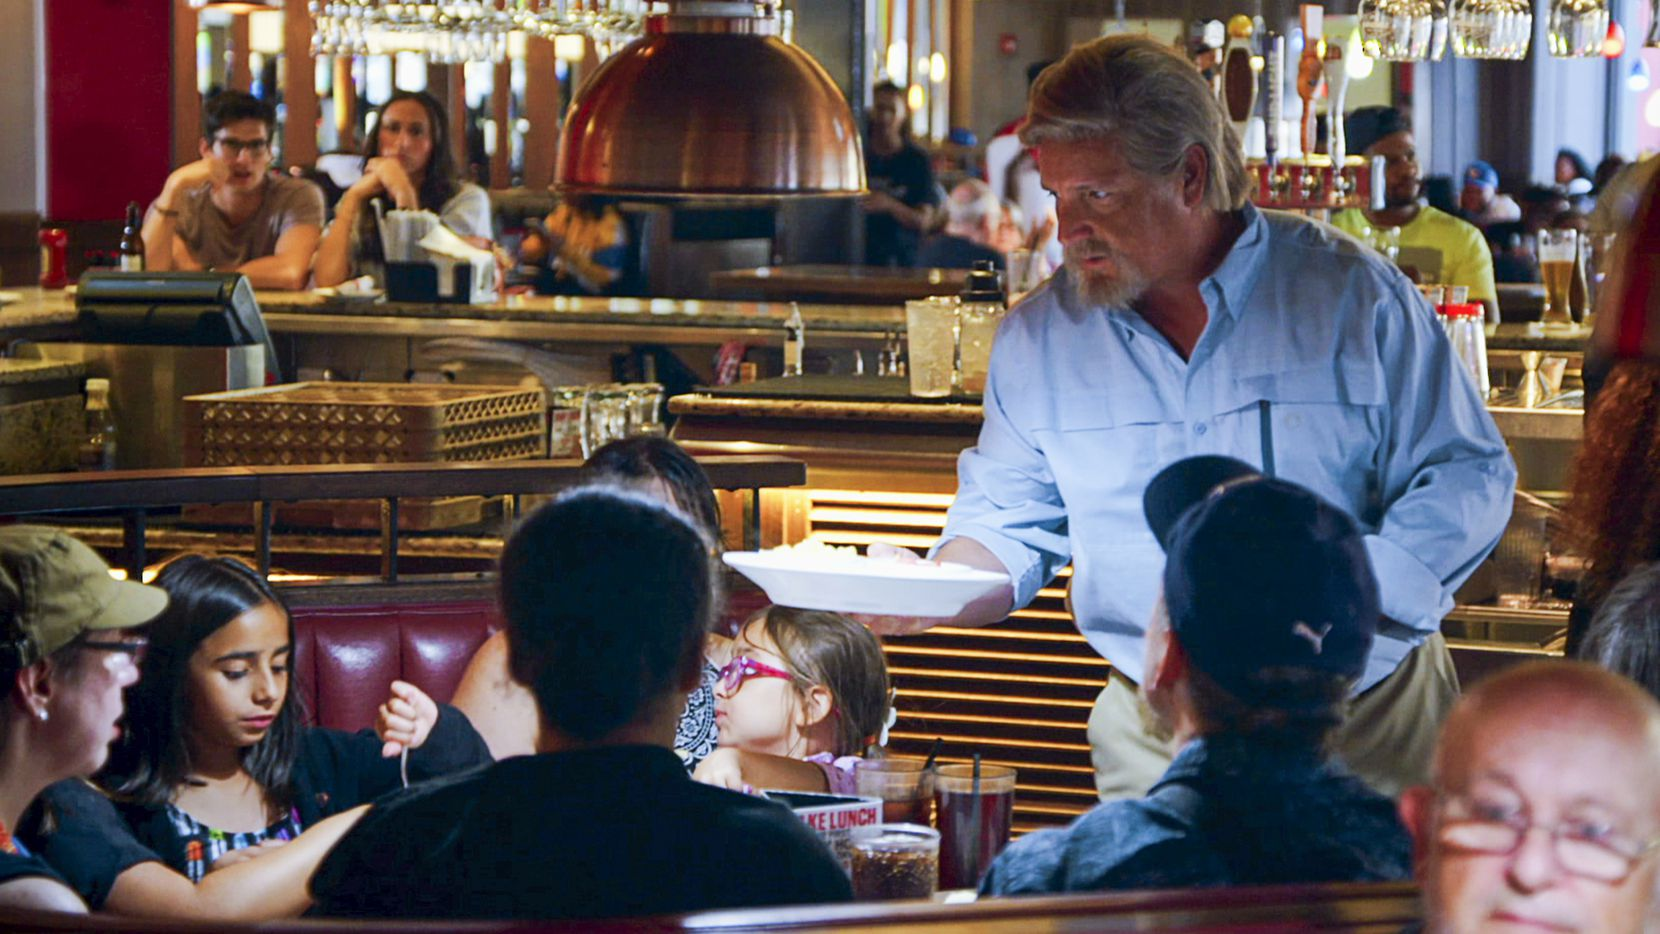 TGI Fridays CEO Ray Blanchette wore a costume — hair and makeup included — for CBS show 'Undercover Boss.' The show was filmed in fall 2019 and airs Oct. 2, 2020.